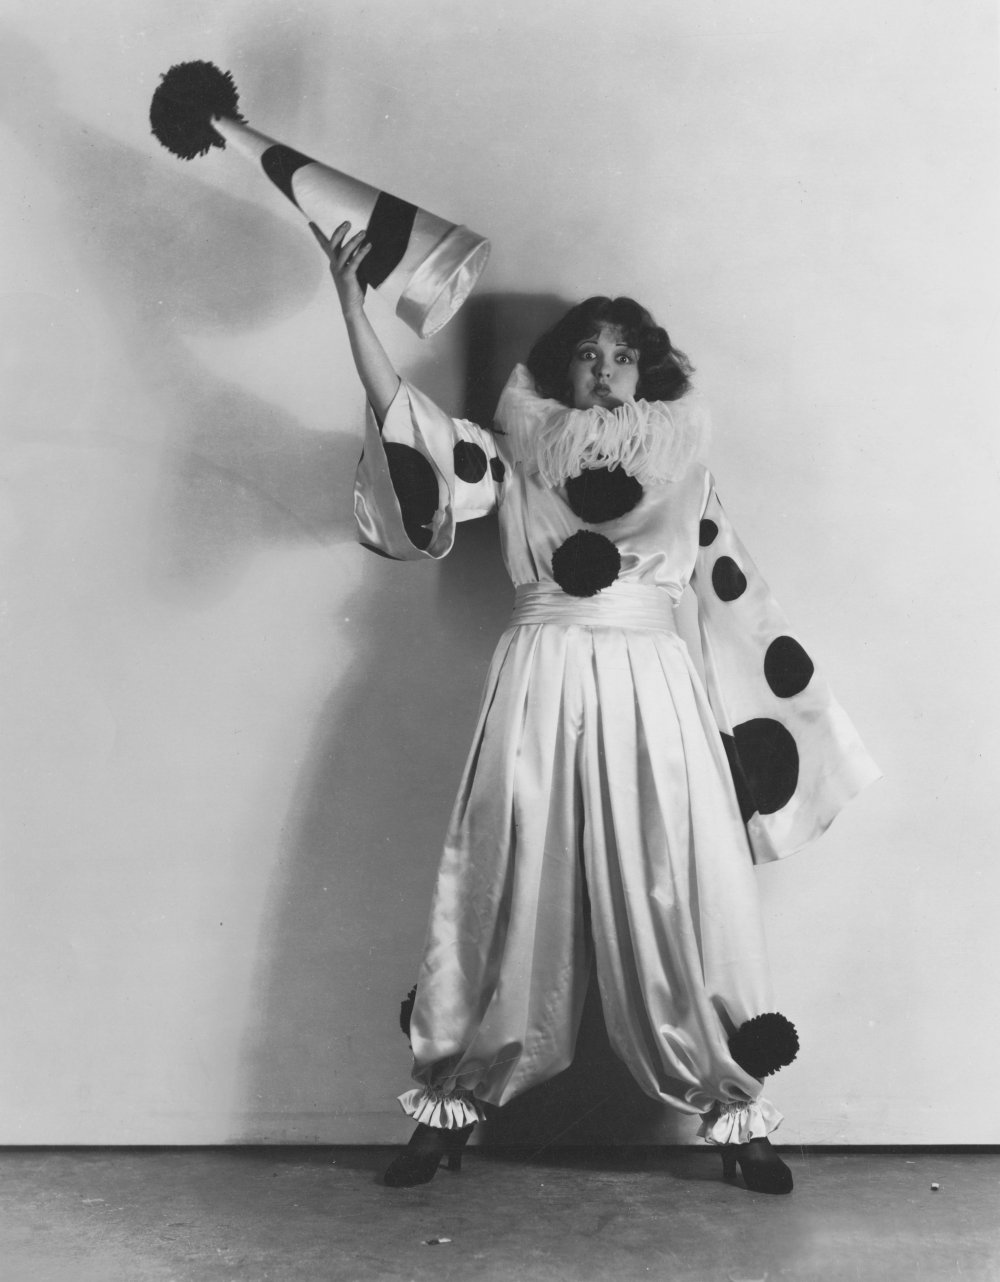 Clara Bow, American-born film actress. Photographed for Dangerous Curves (1929) by George Hommel.